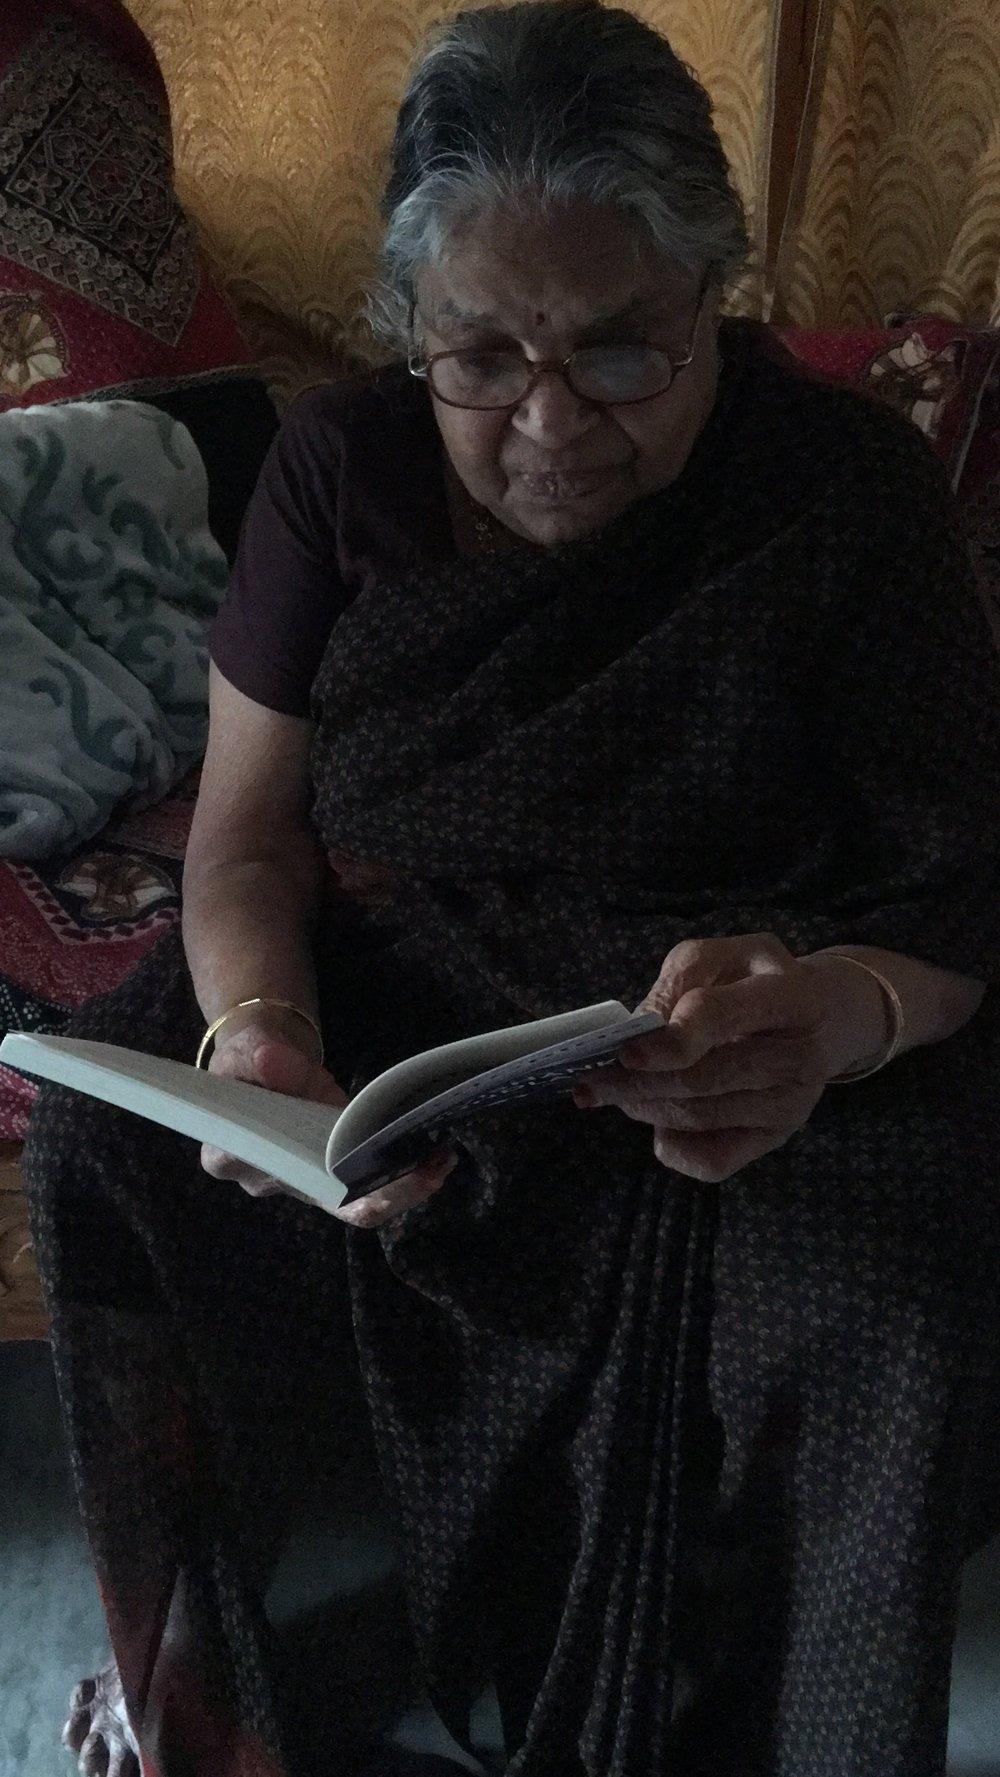 My First Guru, My Mother - Reading my book. This moment made all the hard work that went into writing this book truly worth it! Thanks Mom!